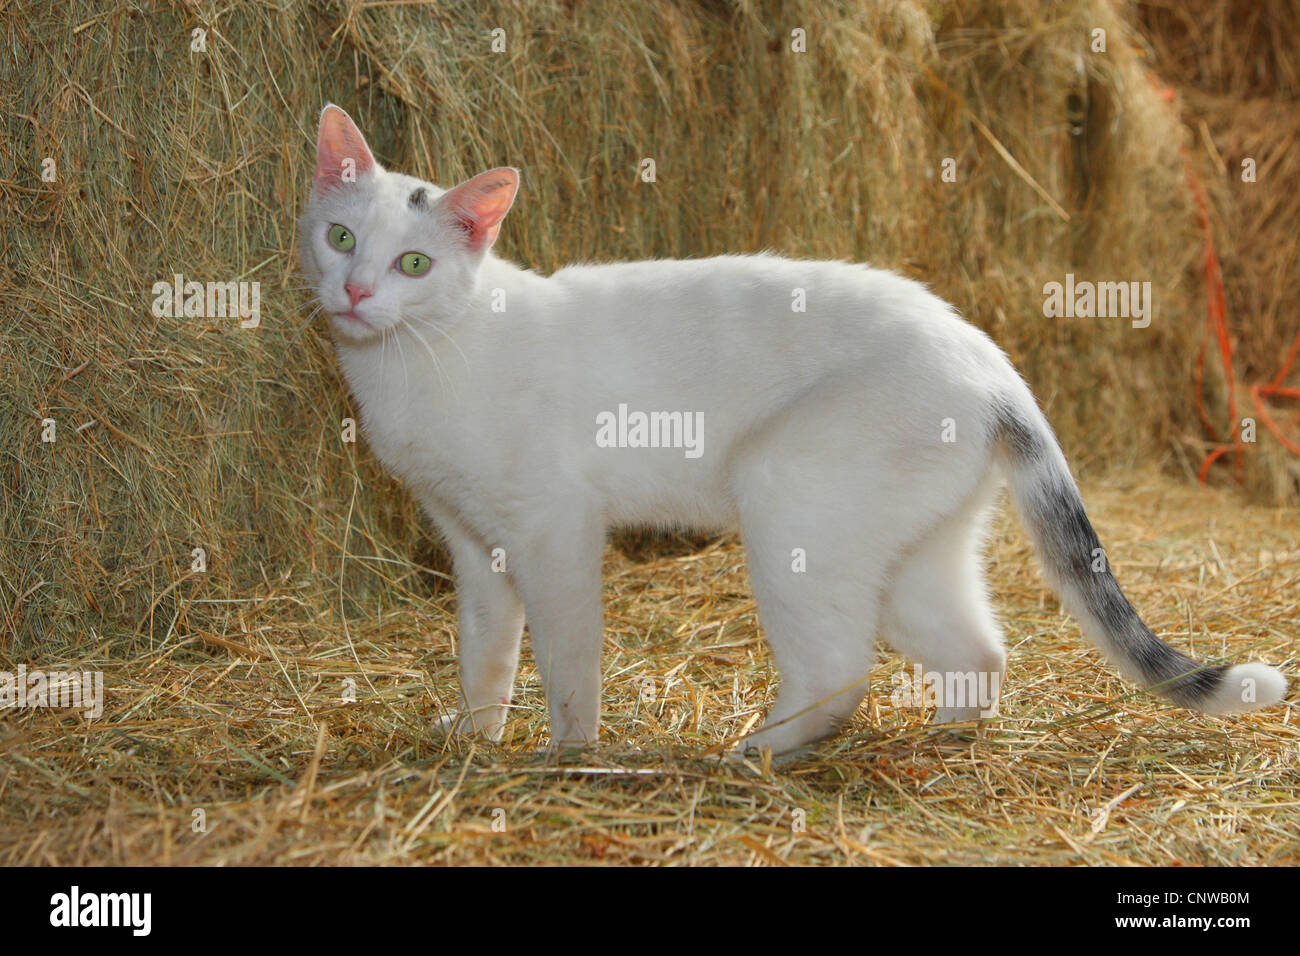 white cat with straw - Stock Image